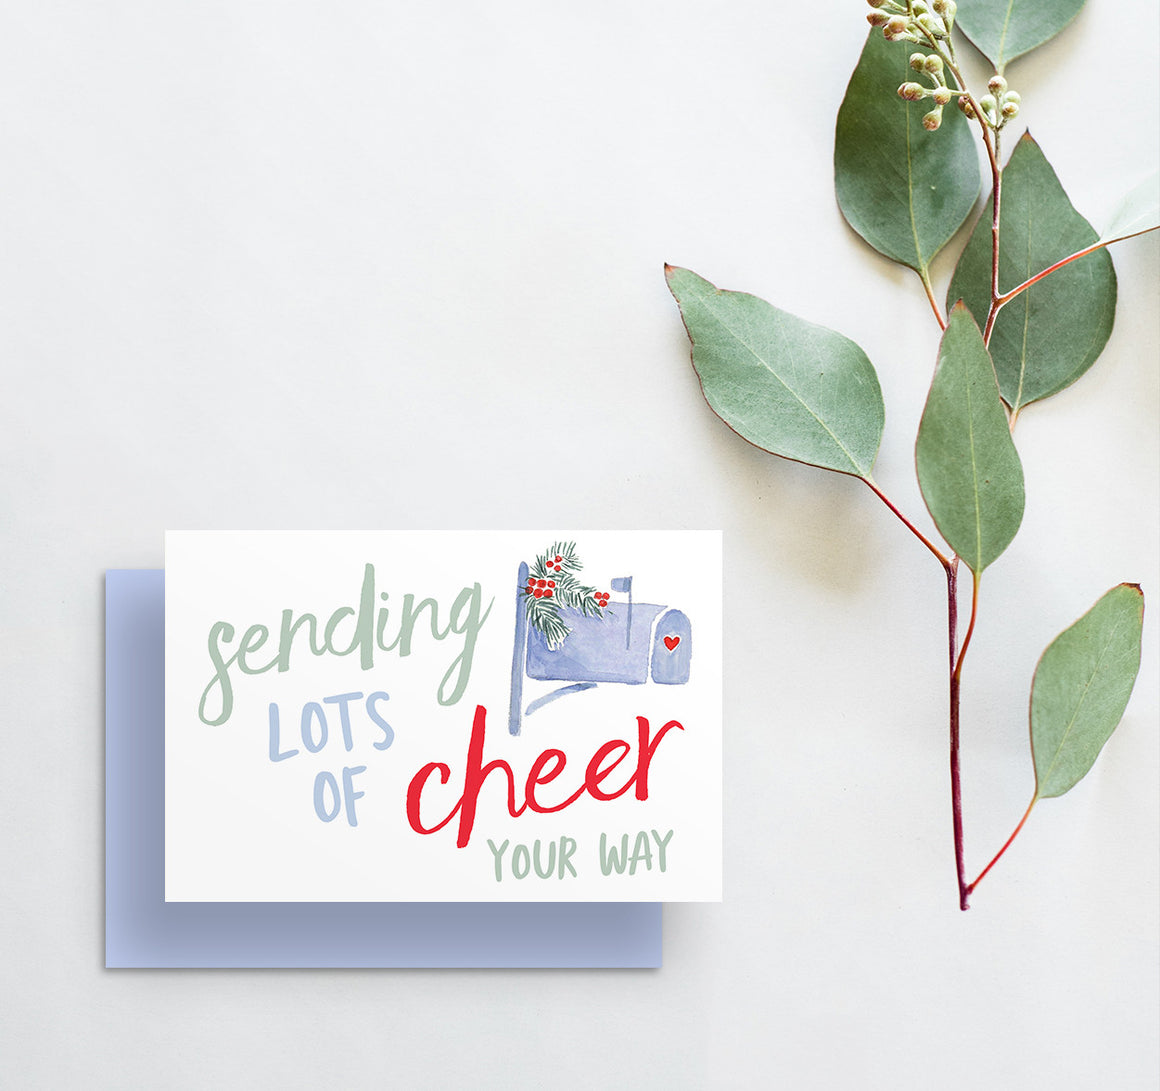 Sending Lots Of Cheer Your Way Holiday Greeting Card